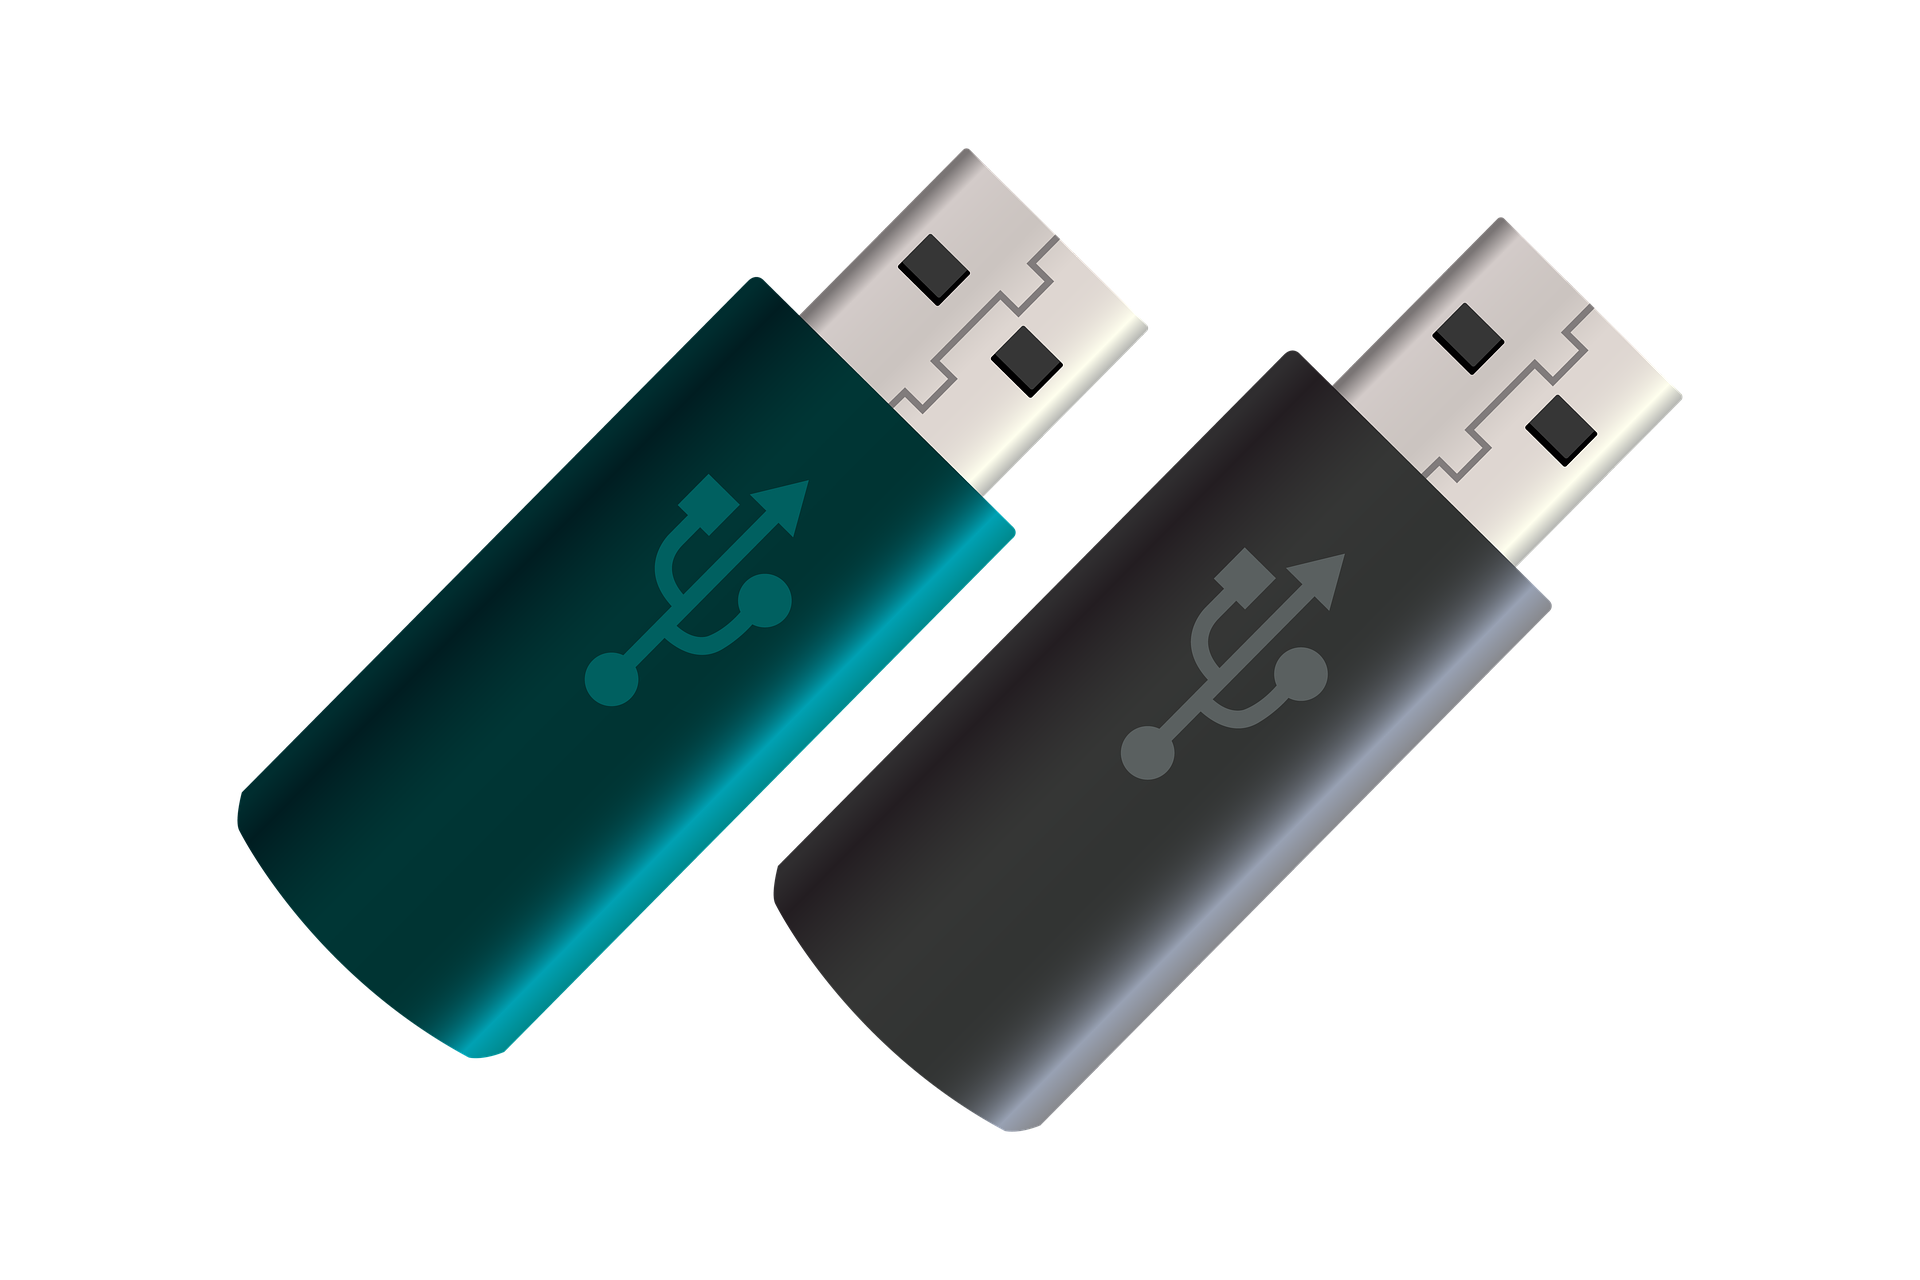 Few Companies Restrict Use of Unencrypted or Unsafe USB Drives